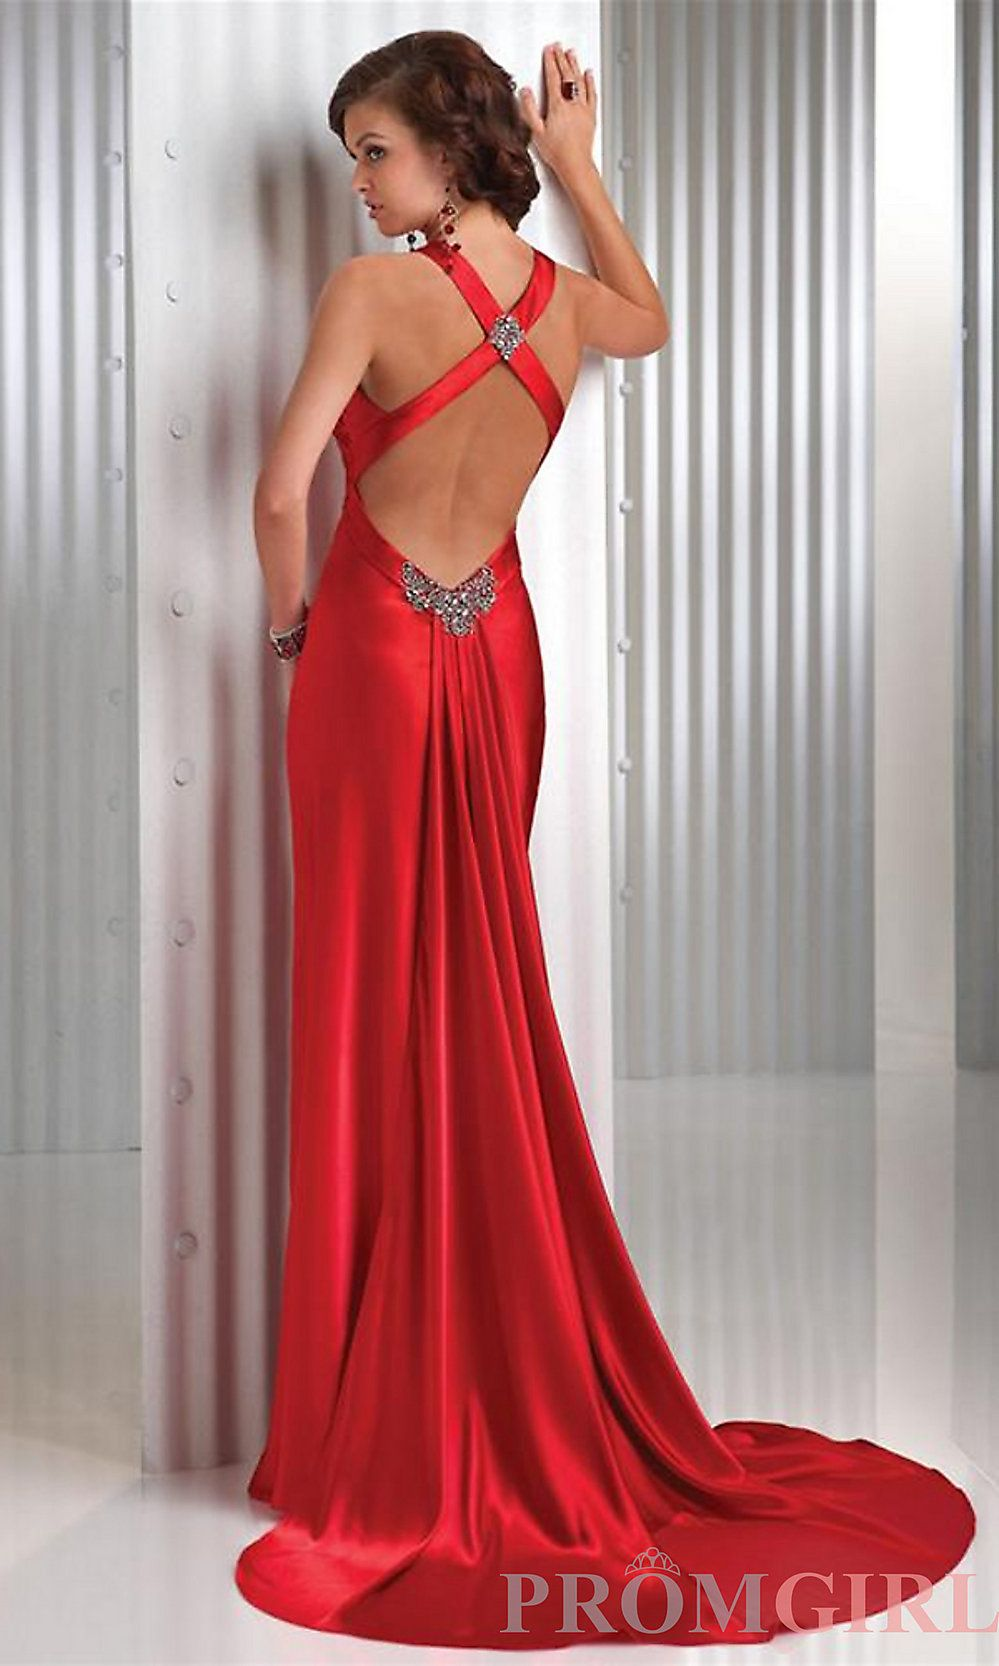 Sexy Evening Gown by Flirt P4415 | Sexy, Gowns and Red prom dresses